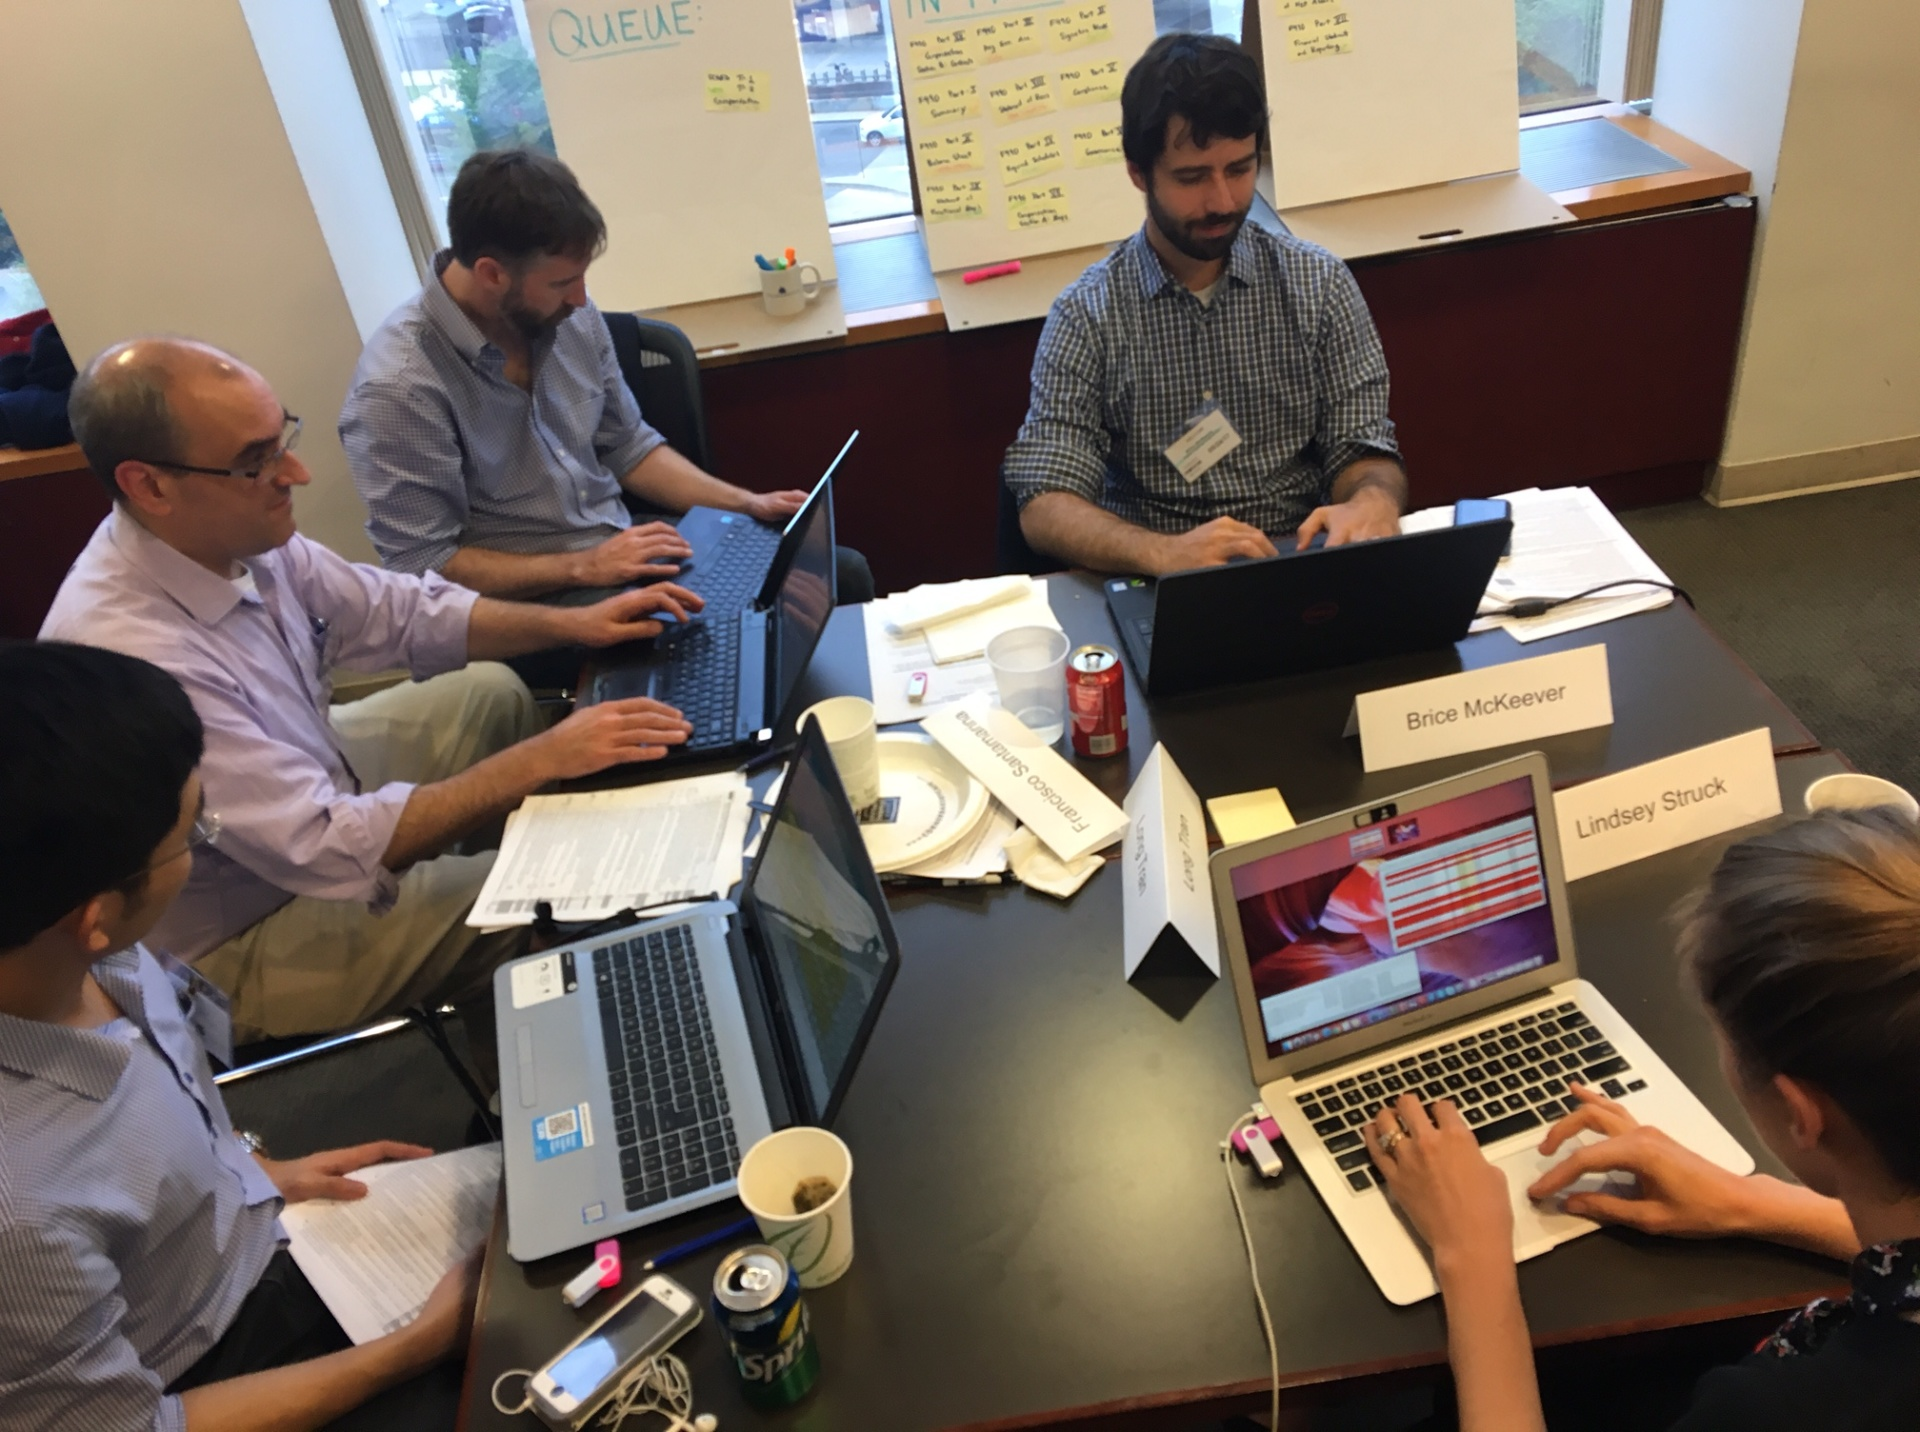 PSI Hosts Nonprofit Datathon